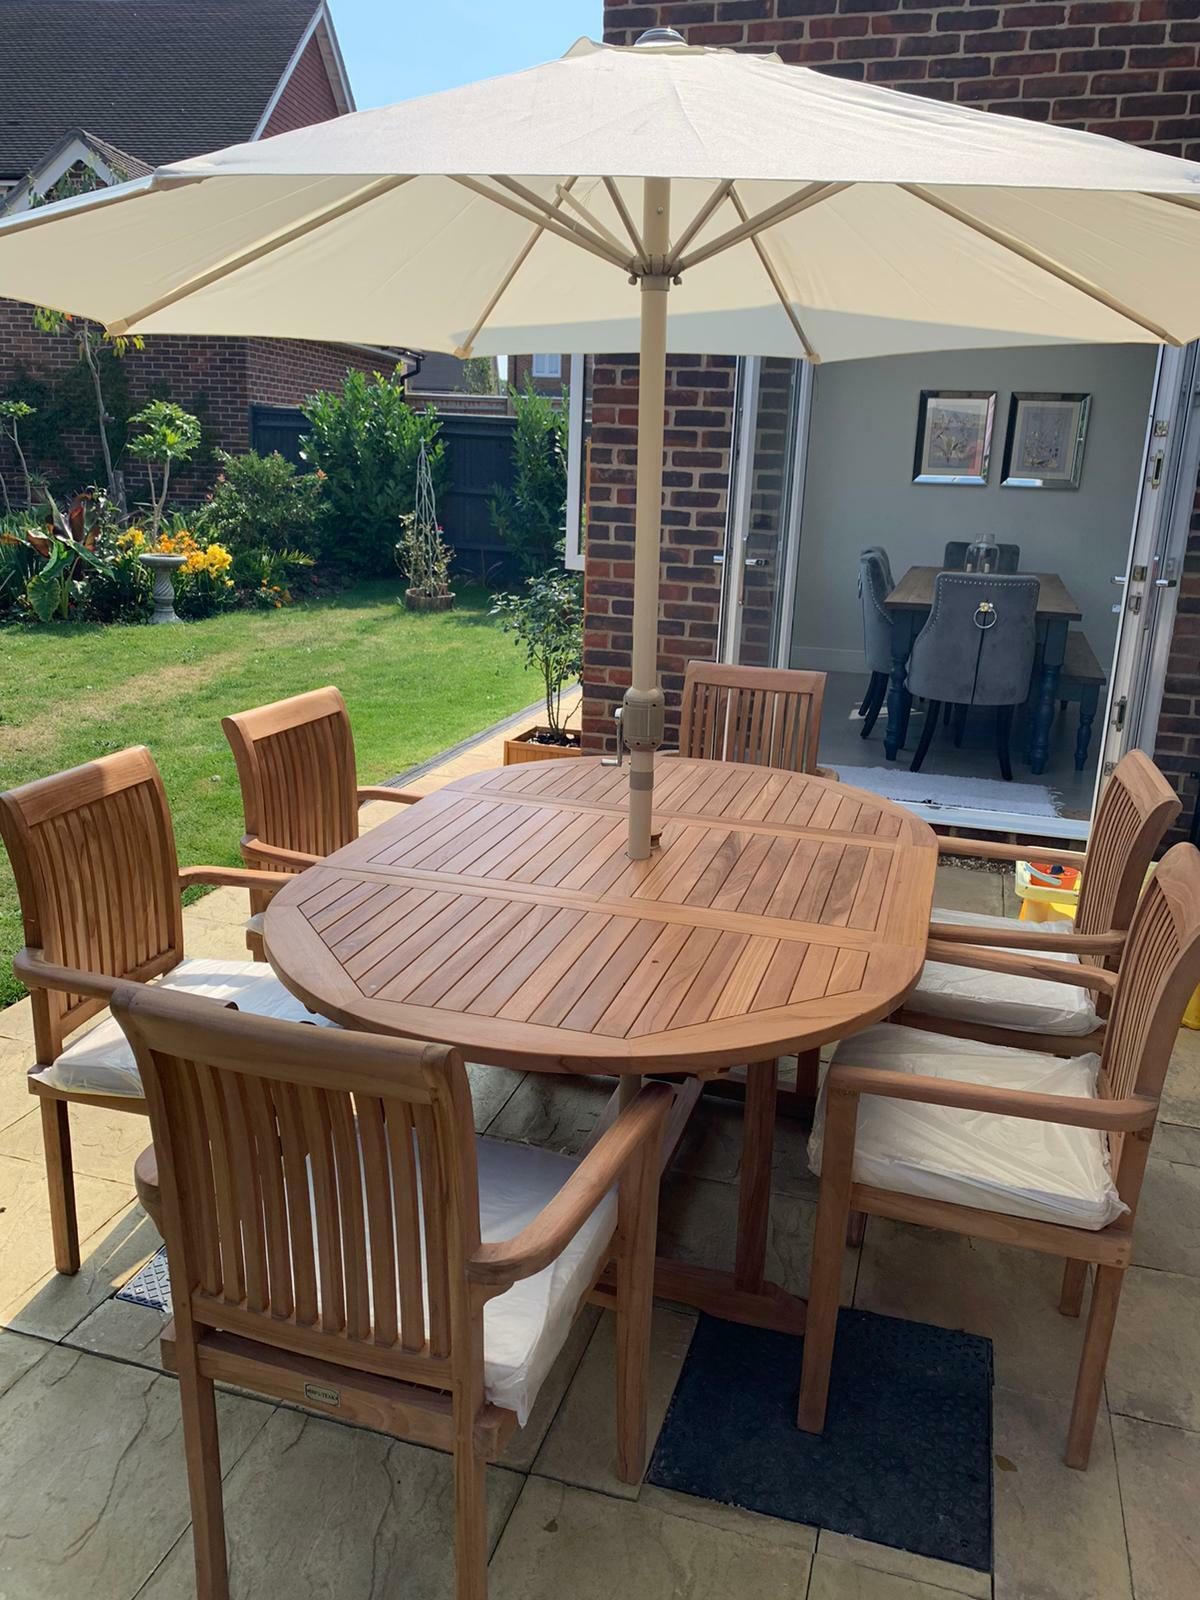 Garden Furniture - TEAK GARDEN FURNITURE 6 SEATER EXTENDING TABLE AND CHAIR SET WITH CUSHION